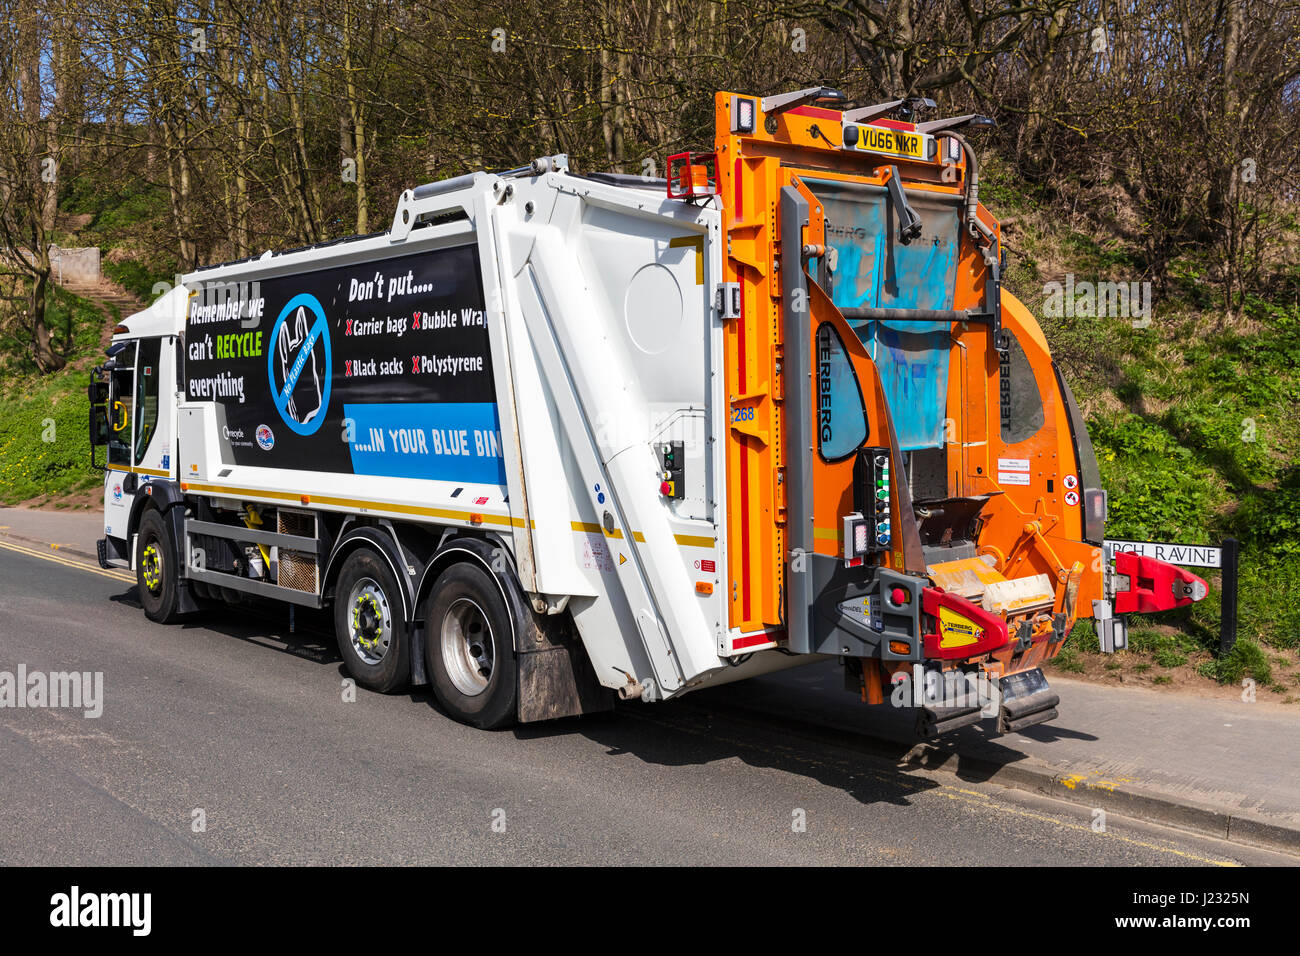 Waste Collection Vehicle Stock Photos & Waste Collection Vehicle ...